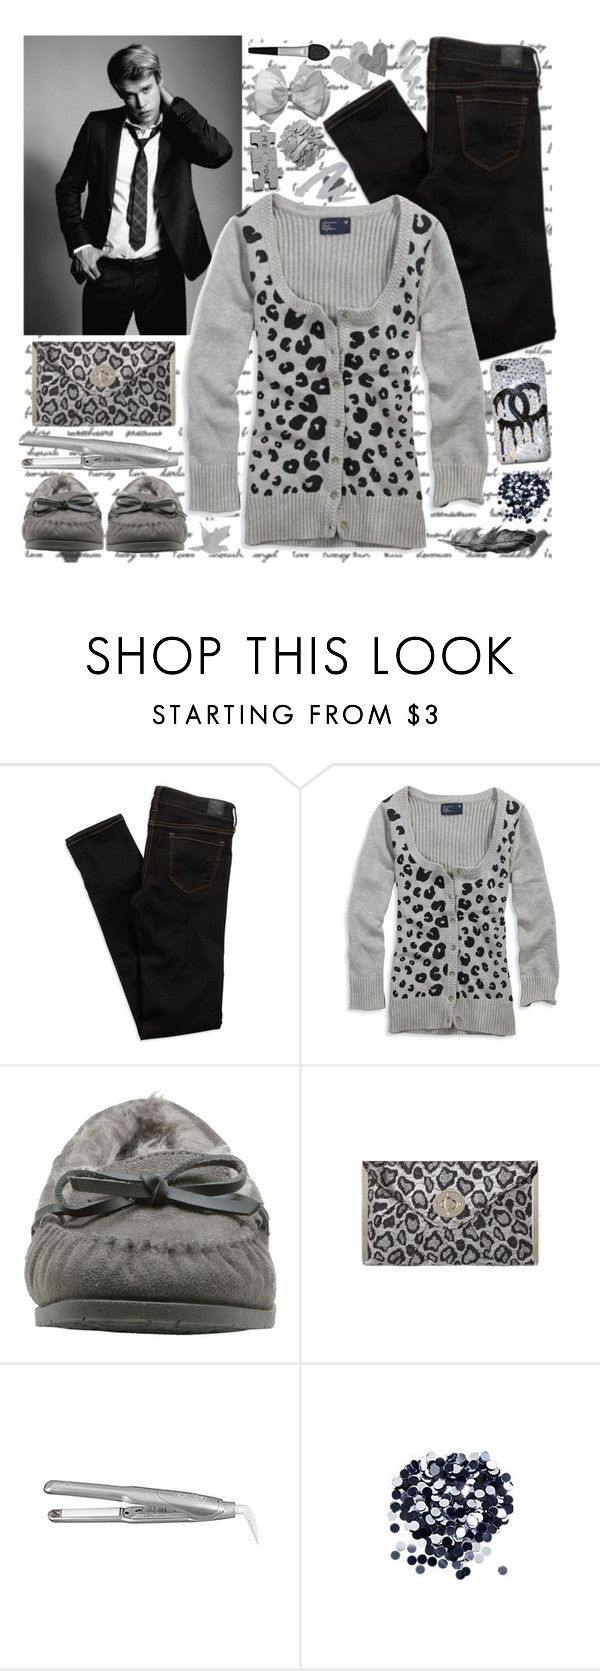 """""""hello, cadeau♥"""" by alisonwonderland ❤ liked on Polyvore featuring American Eagle Outfitters, Melissa, Lauren Conrad, Sultra, CO, Aerie and Sephora Collection"""